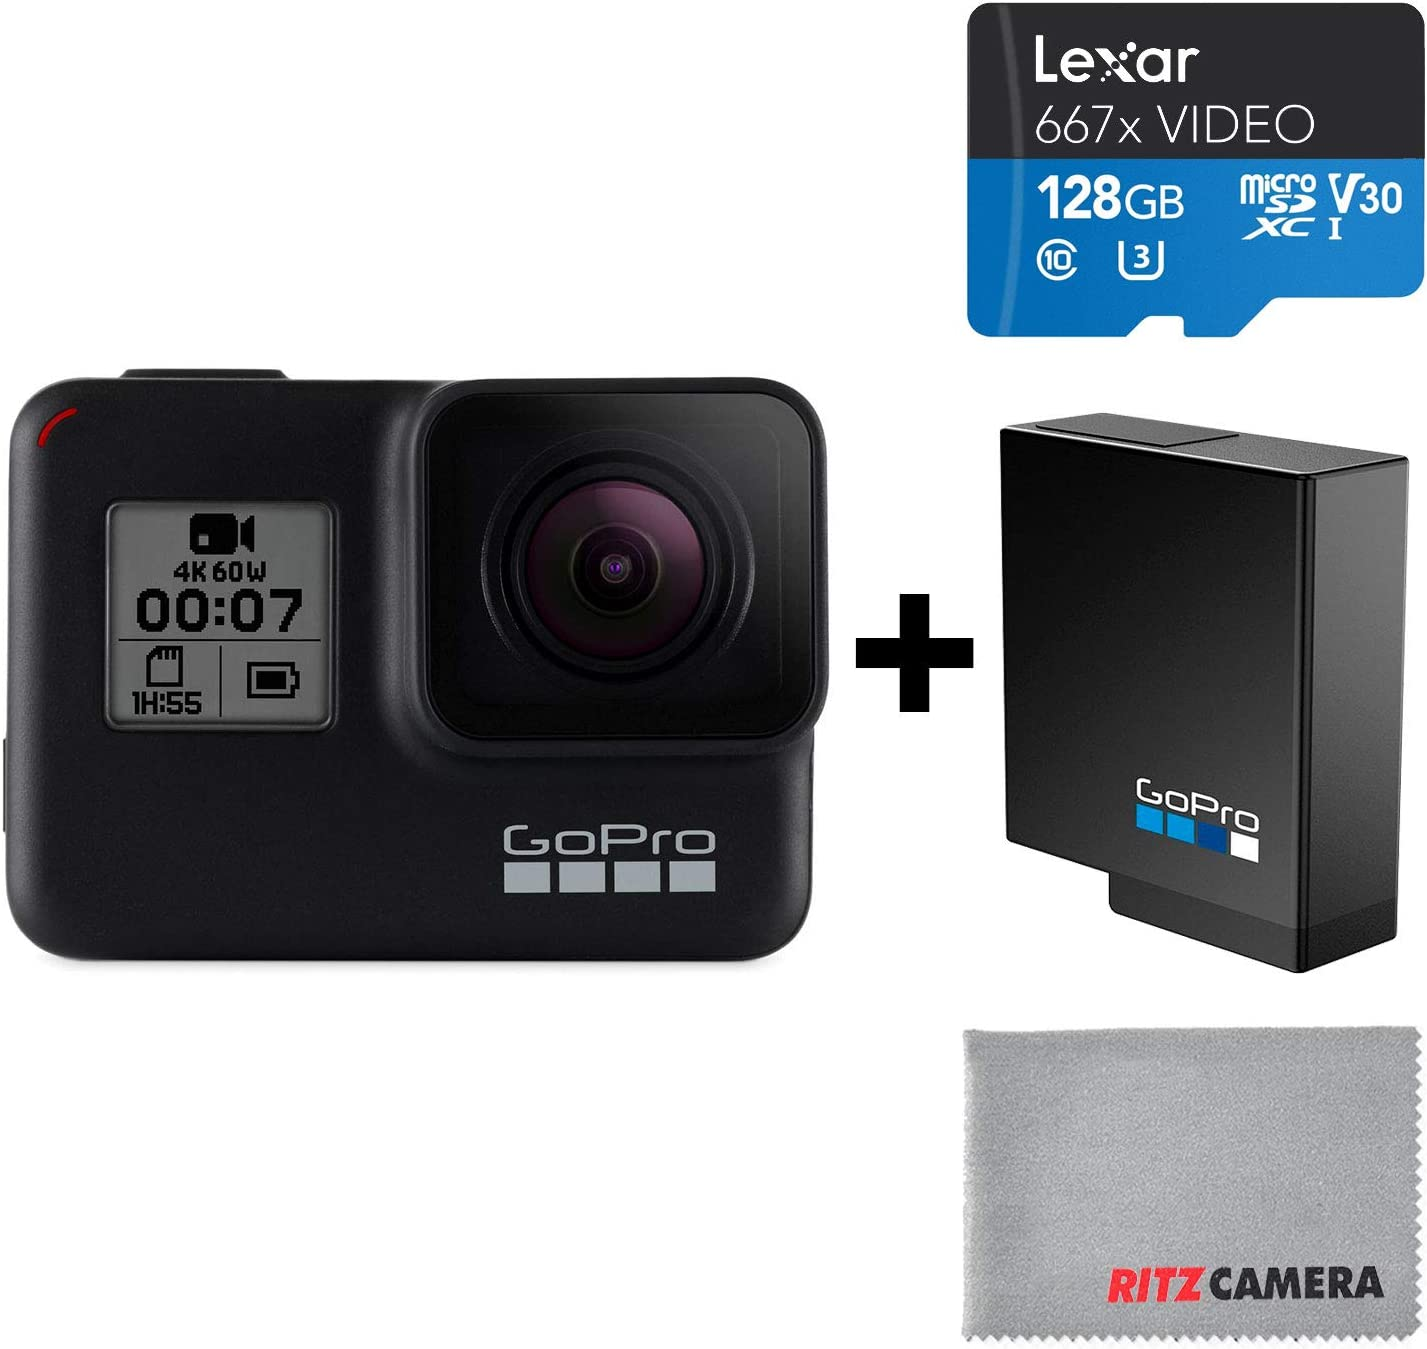 GoPro HERO7 Black Camera + Extra Rechargeable Battery + Lexar 128GB U3 microSDHC Card - Waterproof Digital Action Camera Touch Screen 4K HD Video 12MP ...